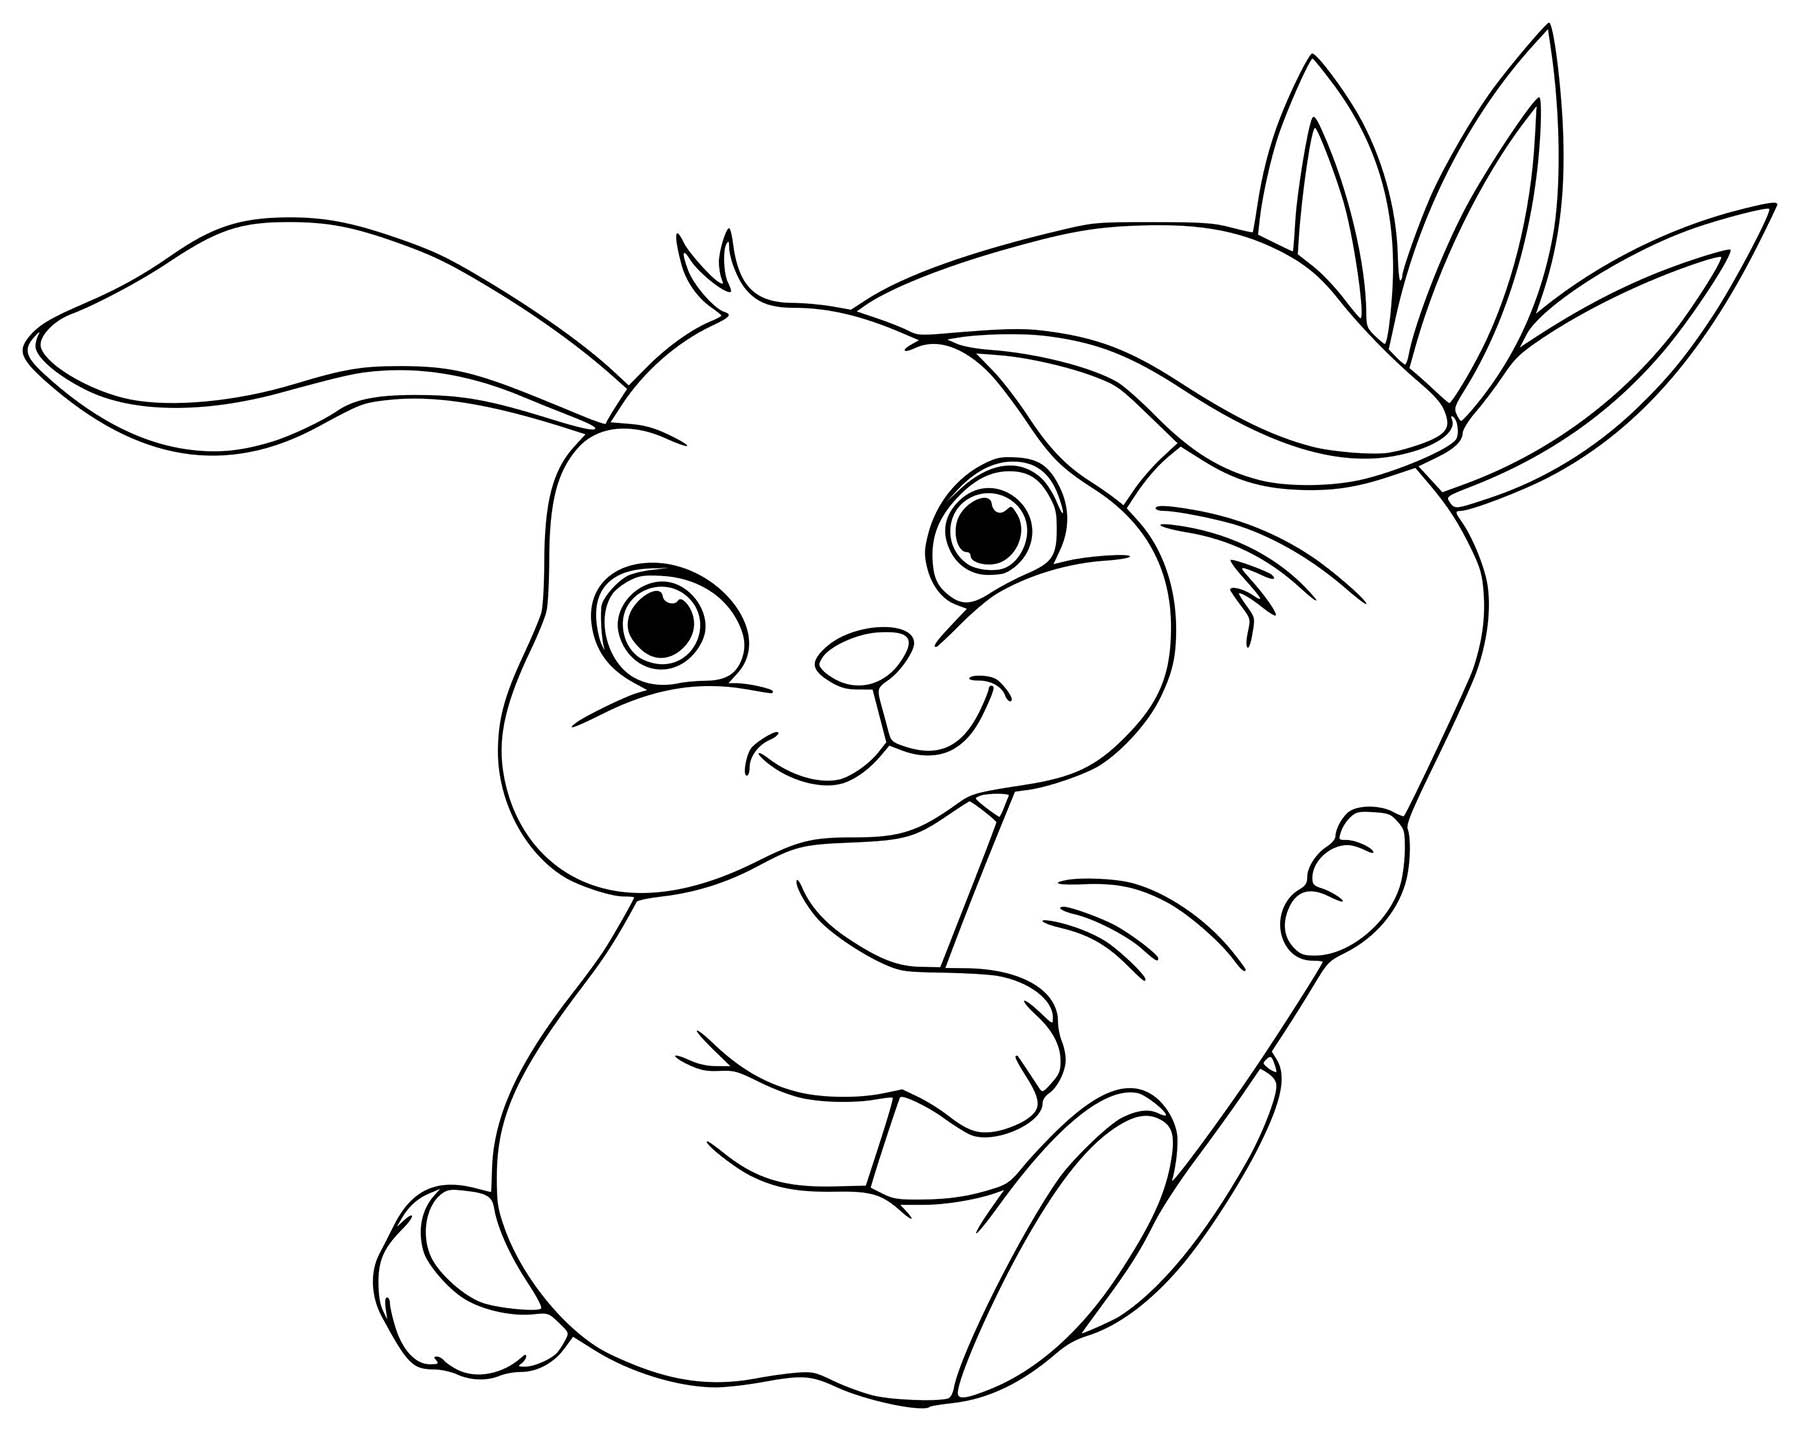 bunny color sheet 60 rabbit shape templates and crafts colouring pages bunny color sheet